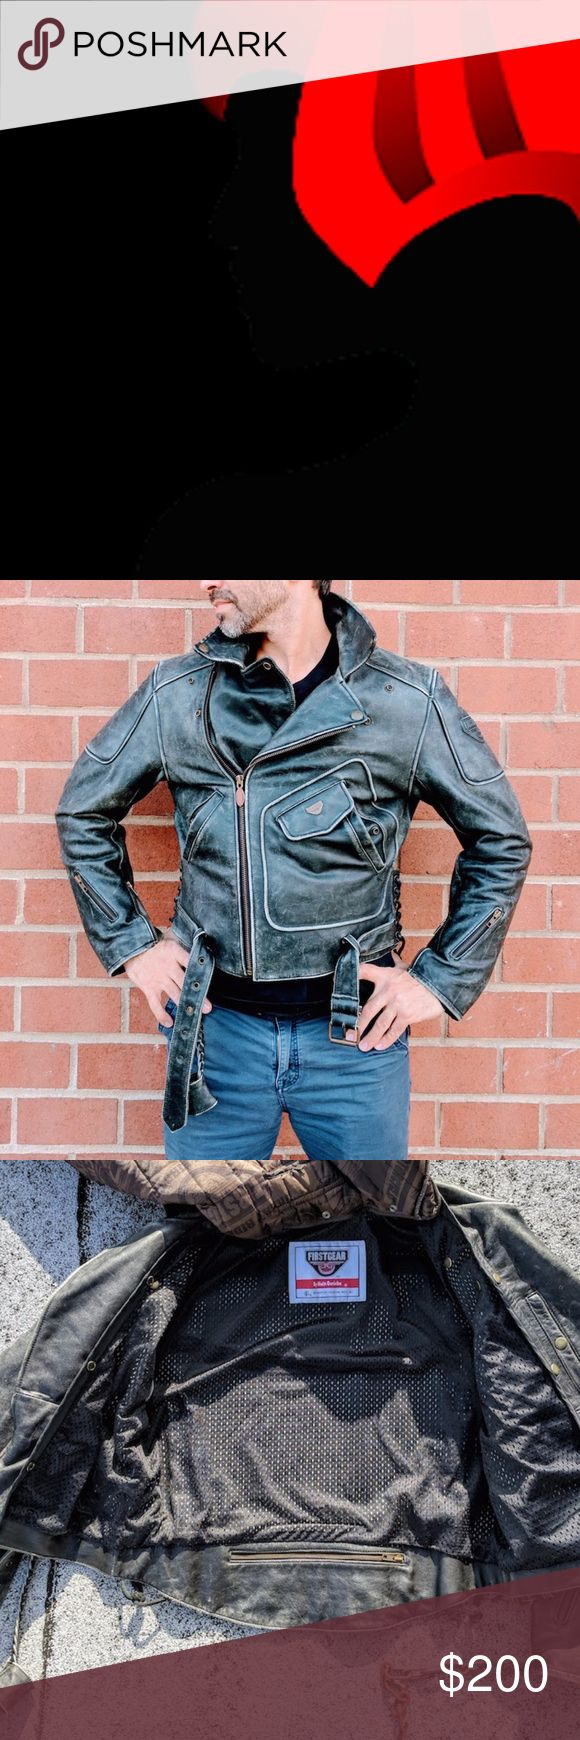 First Gear GREY Leather Motorcycle Biker Jacket First Gear Distressed GRAY Leather Motorcycle Jacket by Hein Gericke Size Medium (Hard to Find).   Jacket comes with original insulated snap-on lining and a neck protector  First Gear Distressed Gray Leather Motorcycle Jacket - Size Medium   Condition  Pre-owned. Excellent. Like New condition. Has a natural, distressed weathered look.  This jacket's leather has a distressed look but there are no scoffs or marks that suggest anything but very…